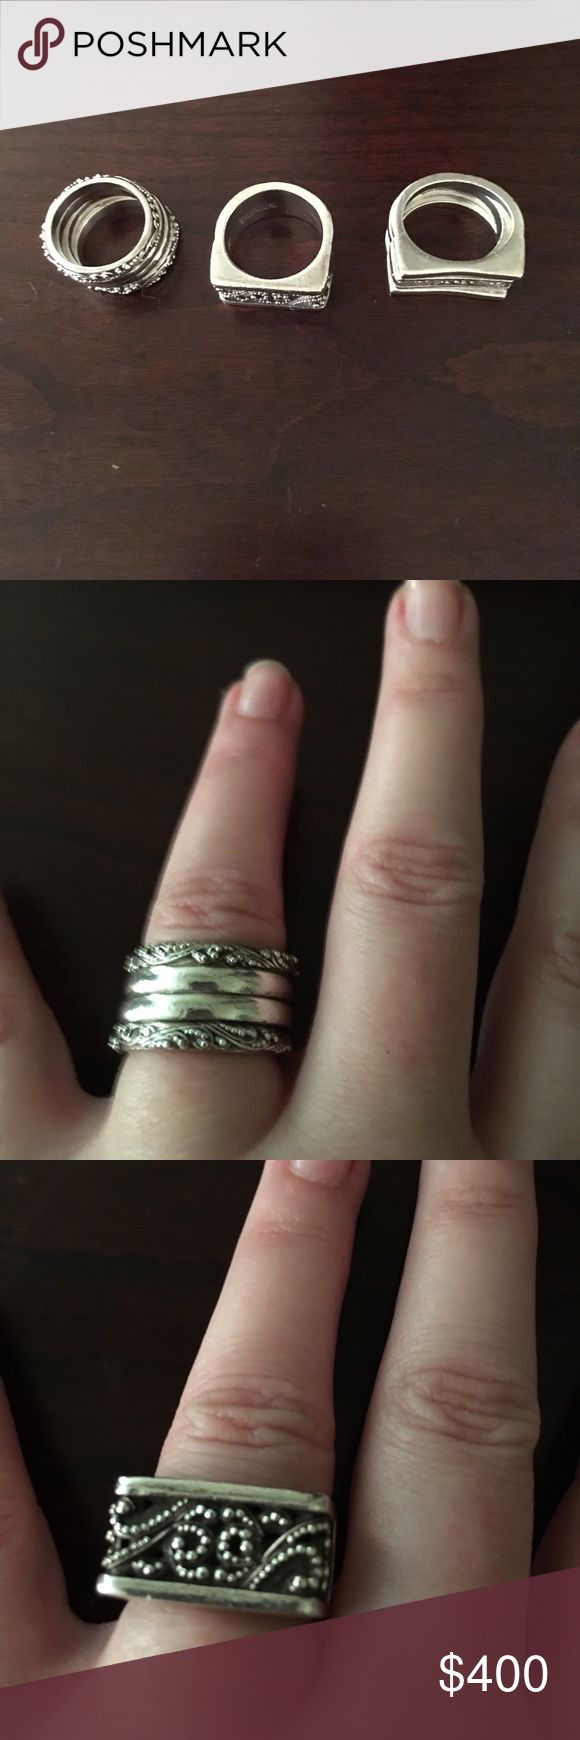 Lois Hill Rings 3 Sets of 925 silver Lois Hill Jewelry Rings